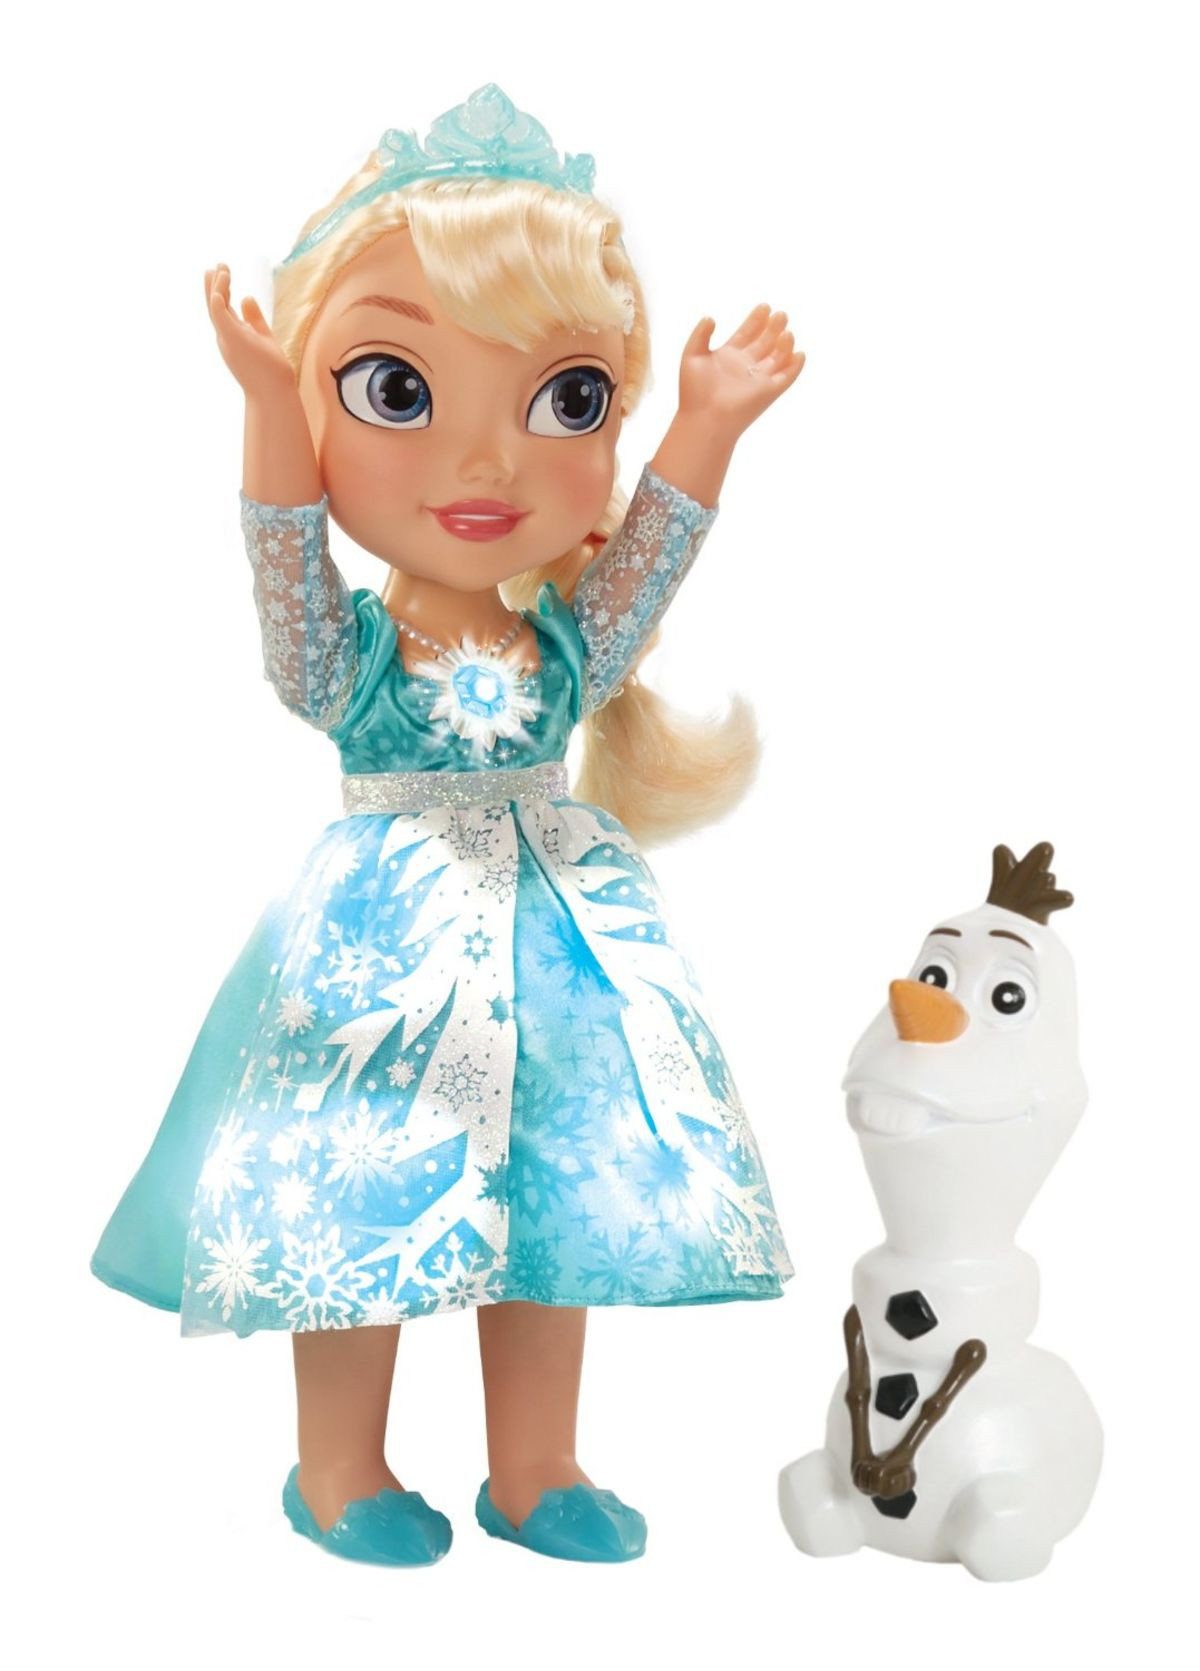 Gift Ideas For 4 Year Old Girls  Best Christmas Gift Present Ideas For 4 Year Old Girls